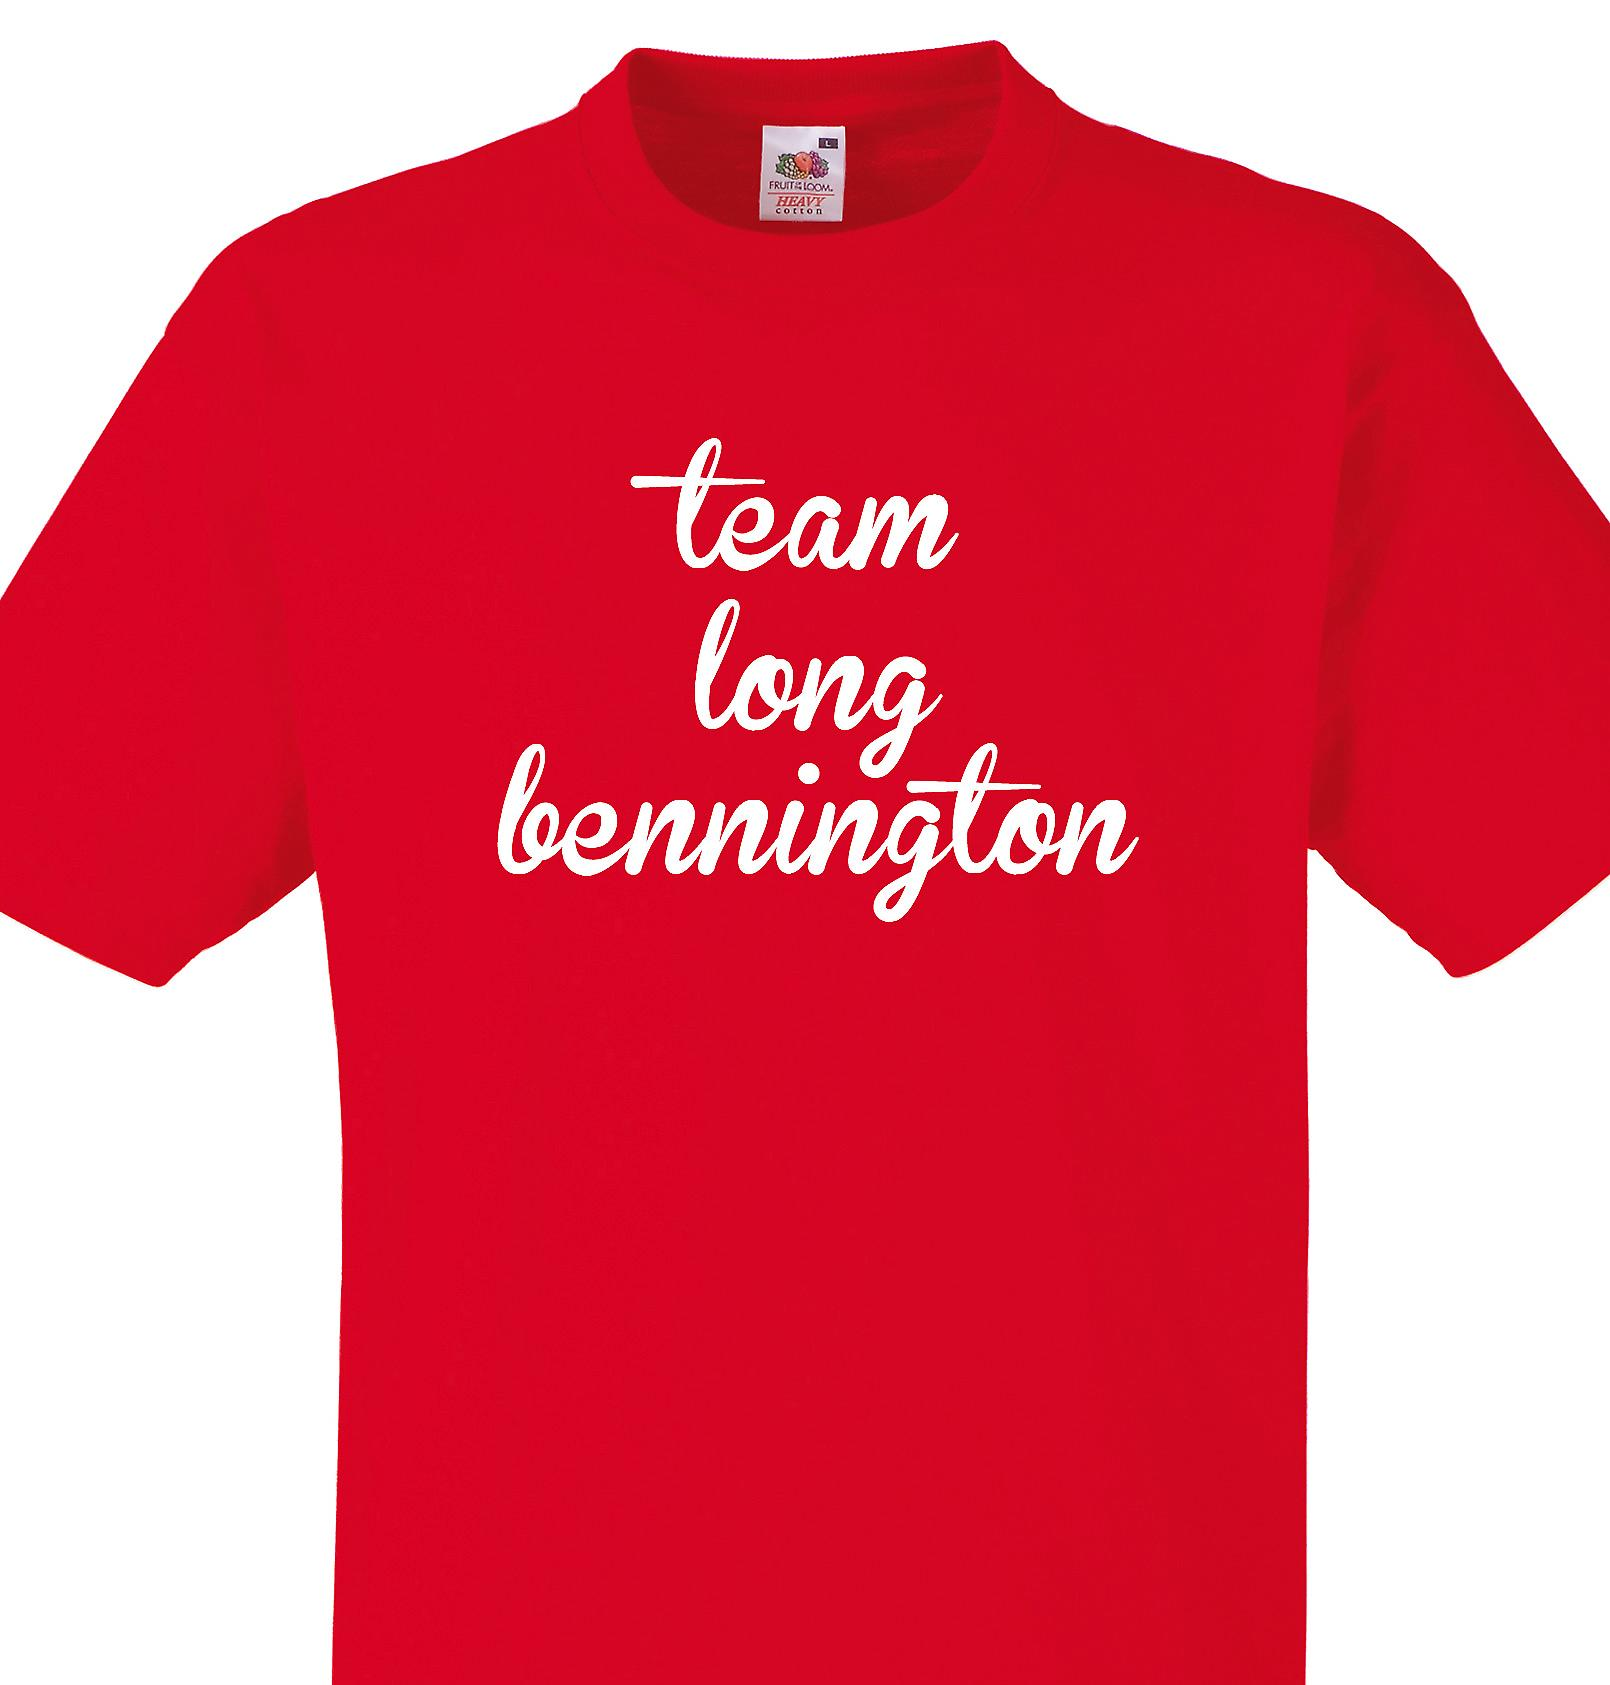 Team Long bennington Red T shirt